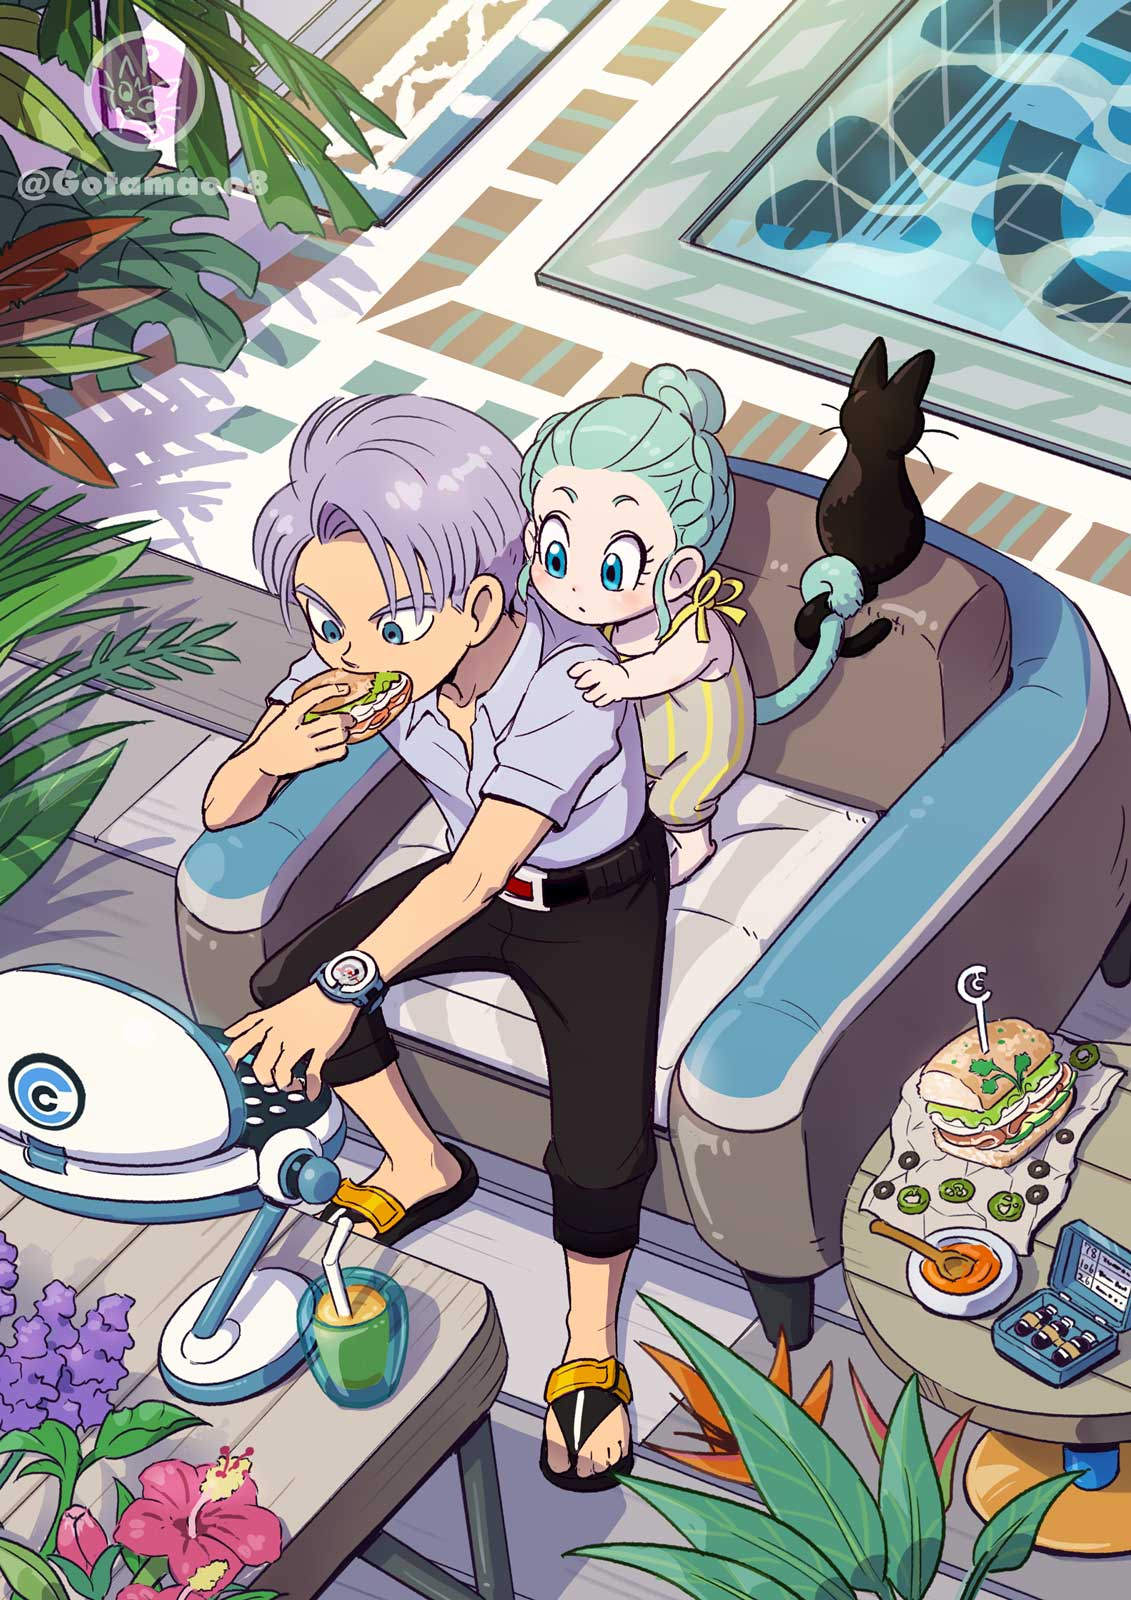 1boy 1girl age_difference animal aqua_hair armchair belt black_belt black_pants blue_eyes bowl box bra_(dragon_ball) braid bread brother_and_sister bud capsule_corp cat caustics chair checkered checkered_floor closed_mouth coffee_table collarbone collared_shirt computer crown_braid dot_nose dragon_ball dragon_ball_z dress_shirt drink drinking_straw eating expressionless flower food food_wrapper from_behind glass grey_shirt hair_bun hair_slicked_back hand_on_another's_shoulder hand_up hibiscus highres hoi-poi_capsule holding holding_another's_tail holding_food juice laptop leaf lettuce looking_down monkey_tail norita_(6110885) olive outstretched_hand pale_skin palm_leaf pants parsley pepper plant pool purple_flower purple_hair red_flower sandals sandwich sauce shadow shirt short_sleeves siblings sidelocks sitting spoon table tail tama_(dragon_ball) trunks_(dragon_ball) twitter_username typing watch watch water wide-eyed wide_shot